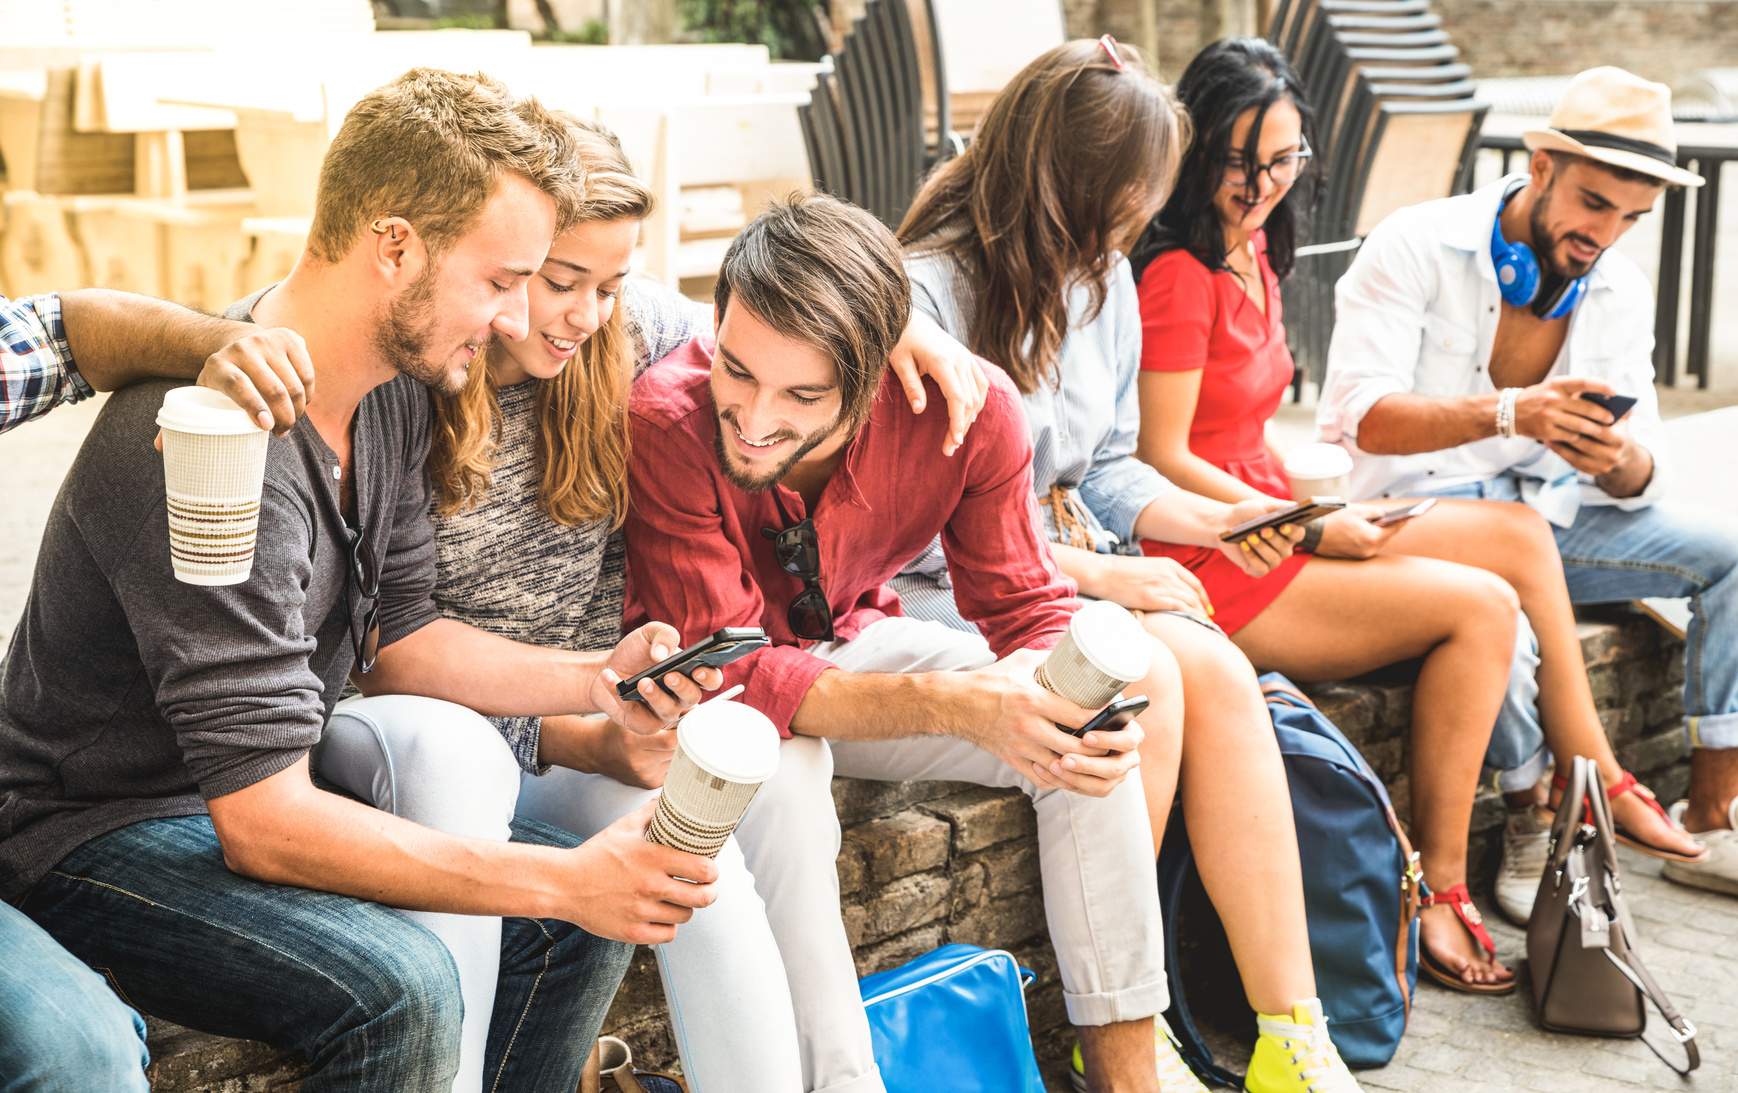 Multiracial millennials group using smart phone at city college backyard – Young people addicted by mobile smartphone – Technology concept with connected trendy friends – Warm vibrance sunshine filter